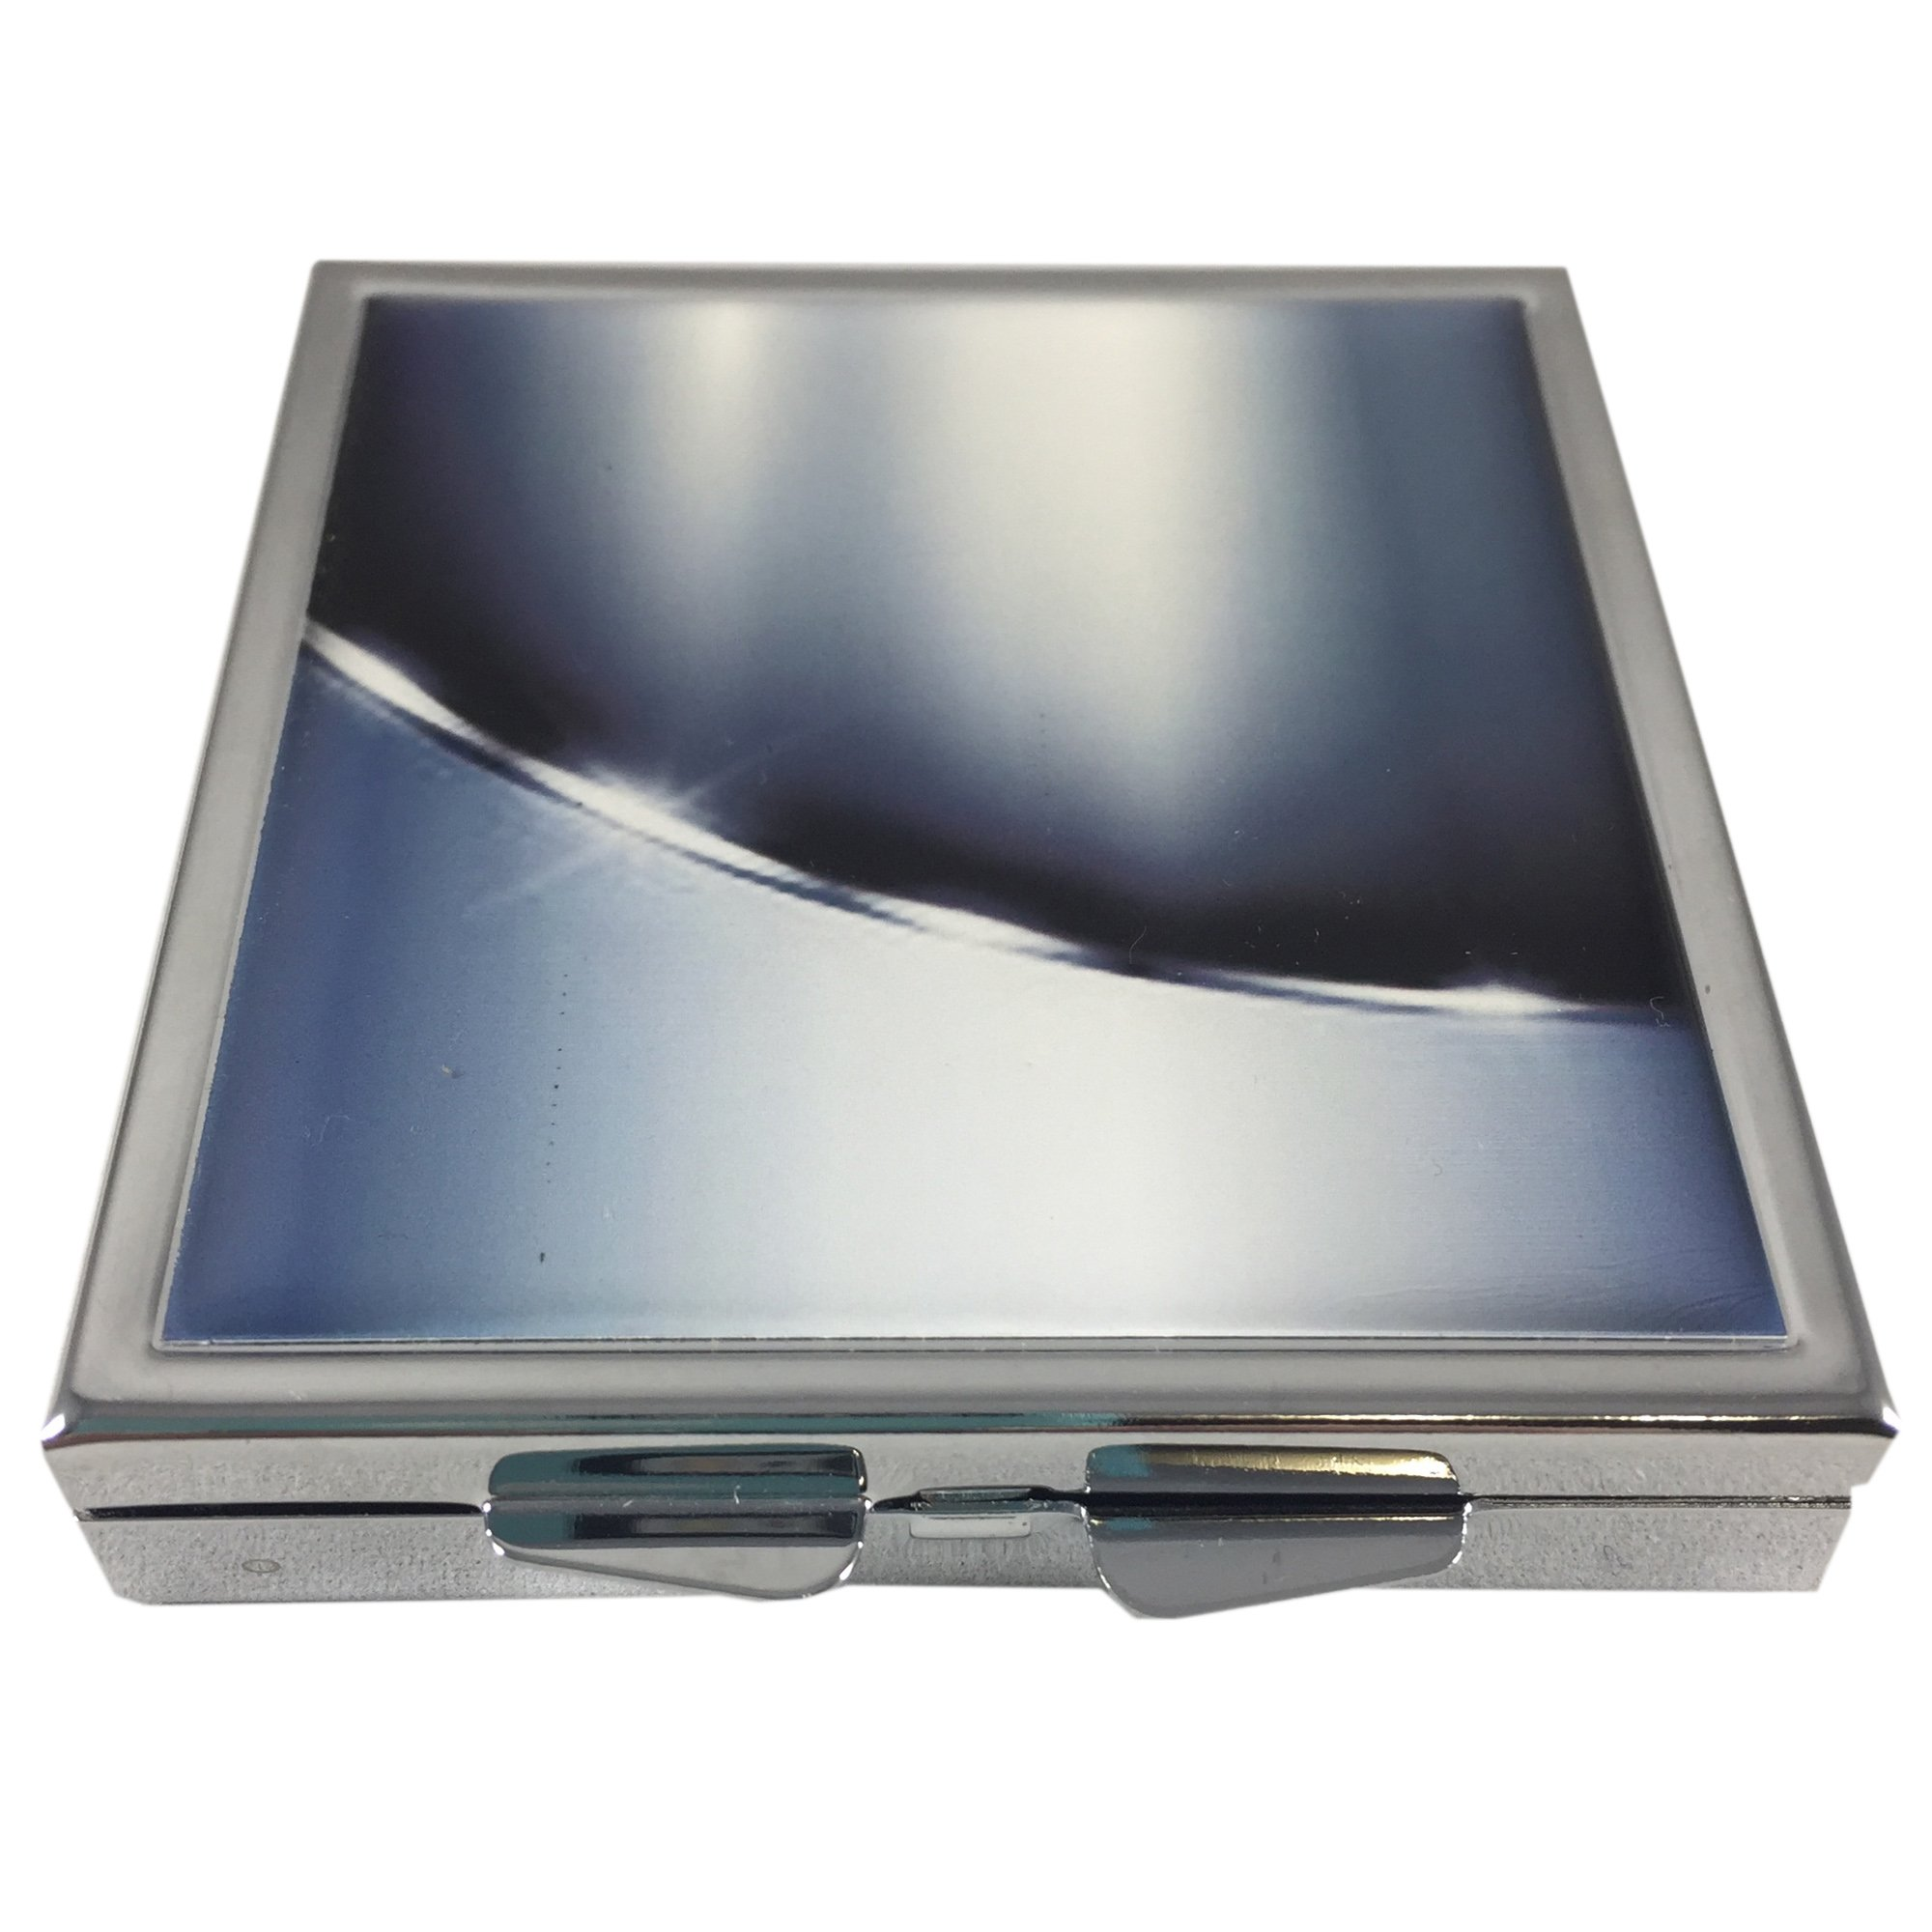 Sleek Metallic Condom Carrying Case, Pocket/Purse/Travel Case-Discreetly Holds and Protects Two Condoms, Unisex